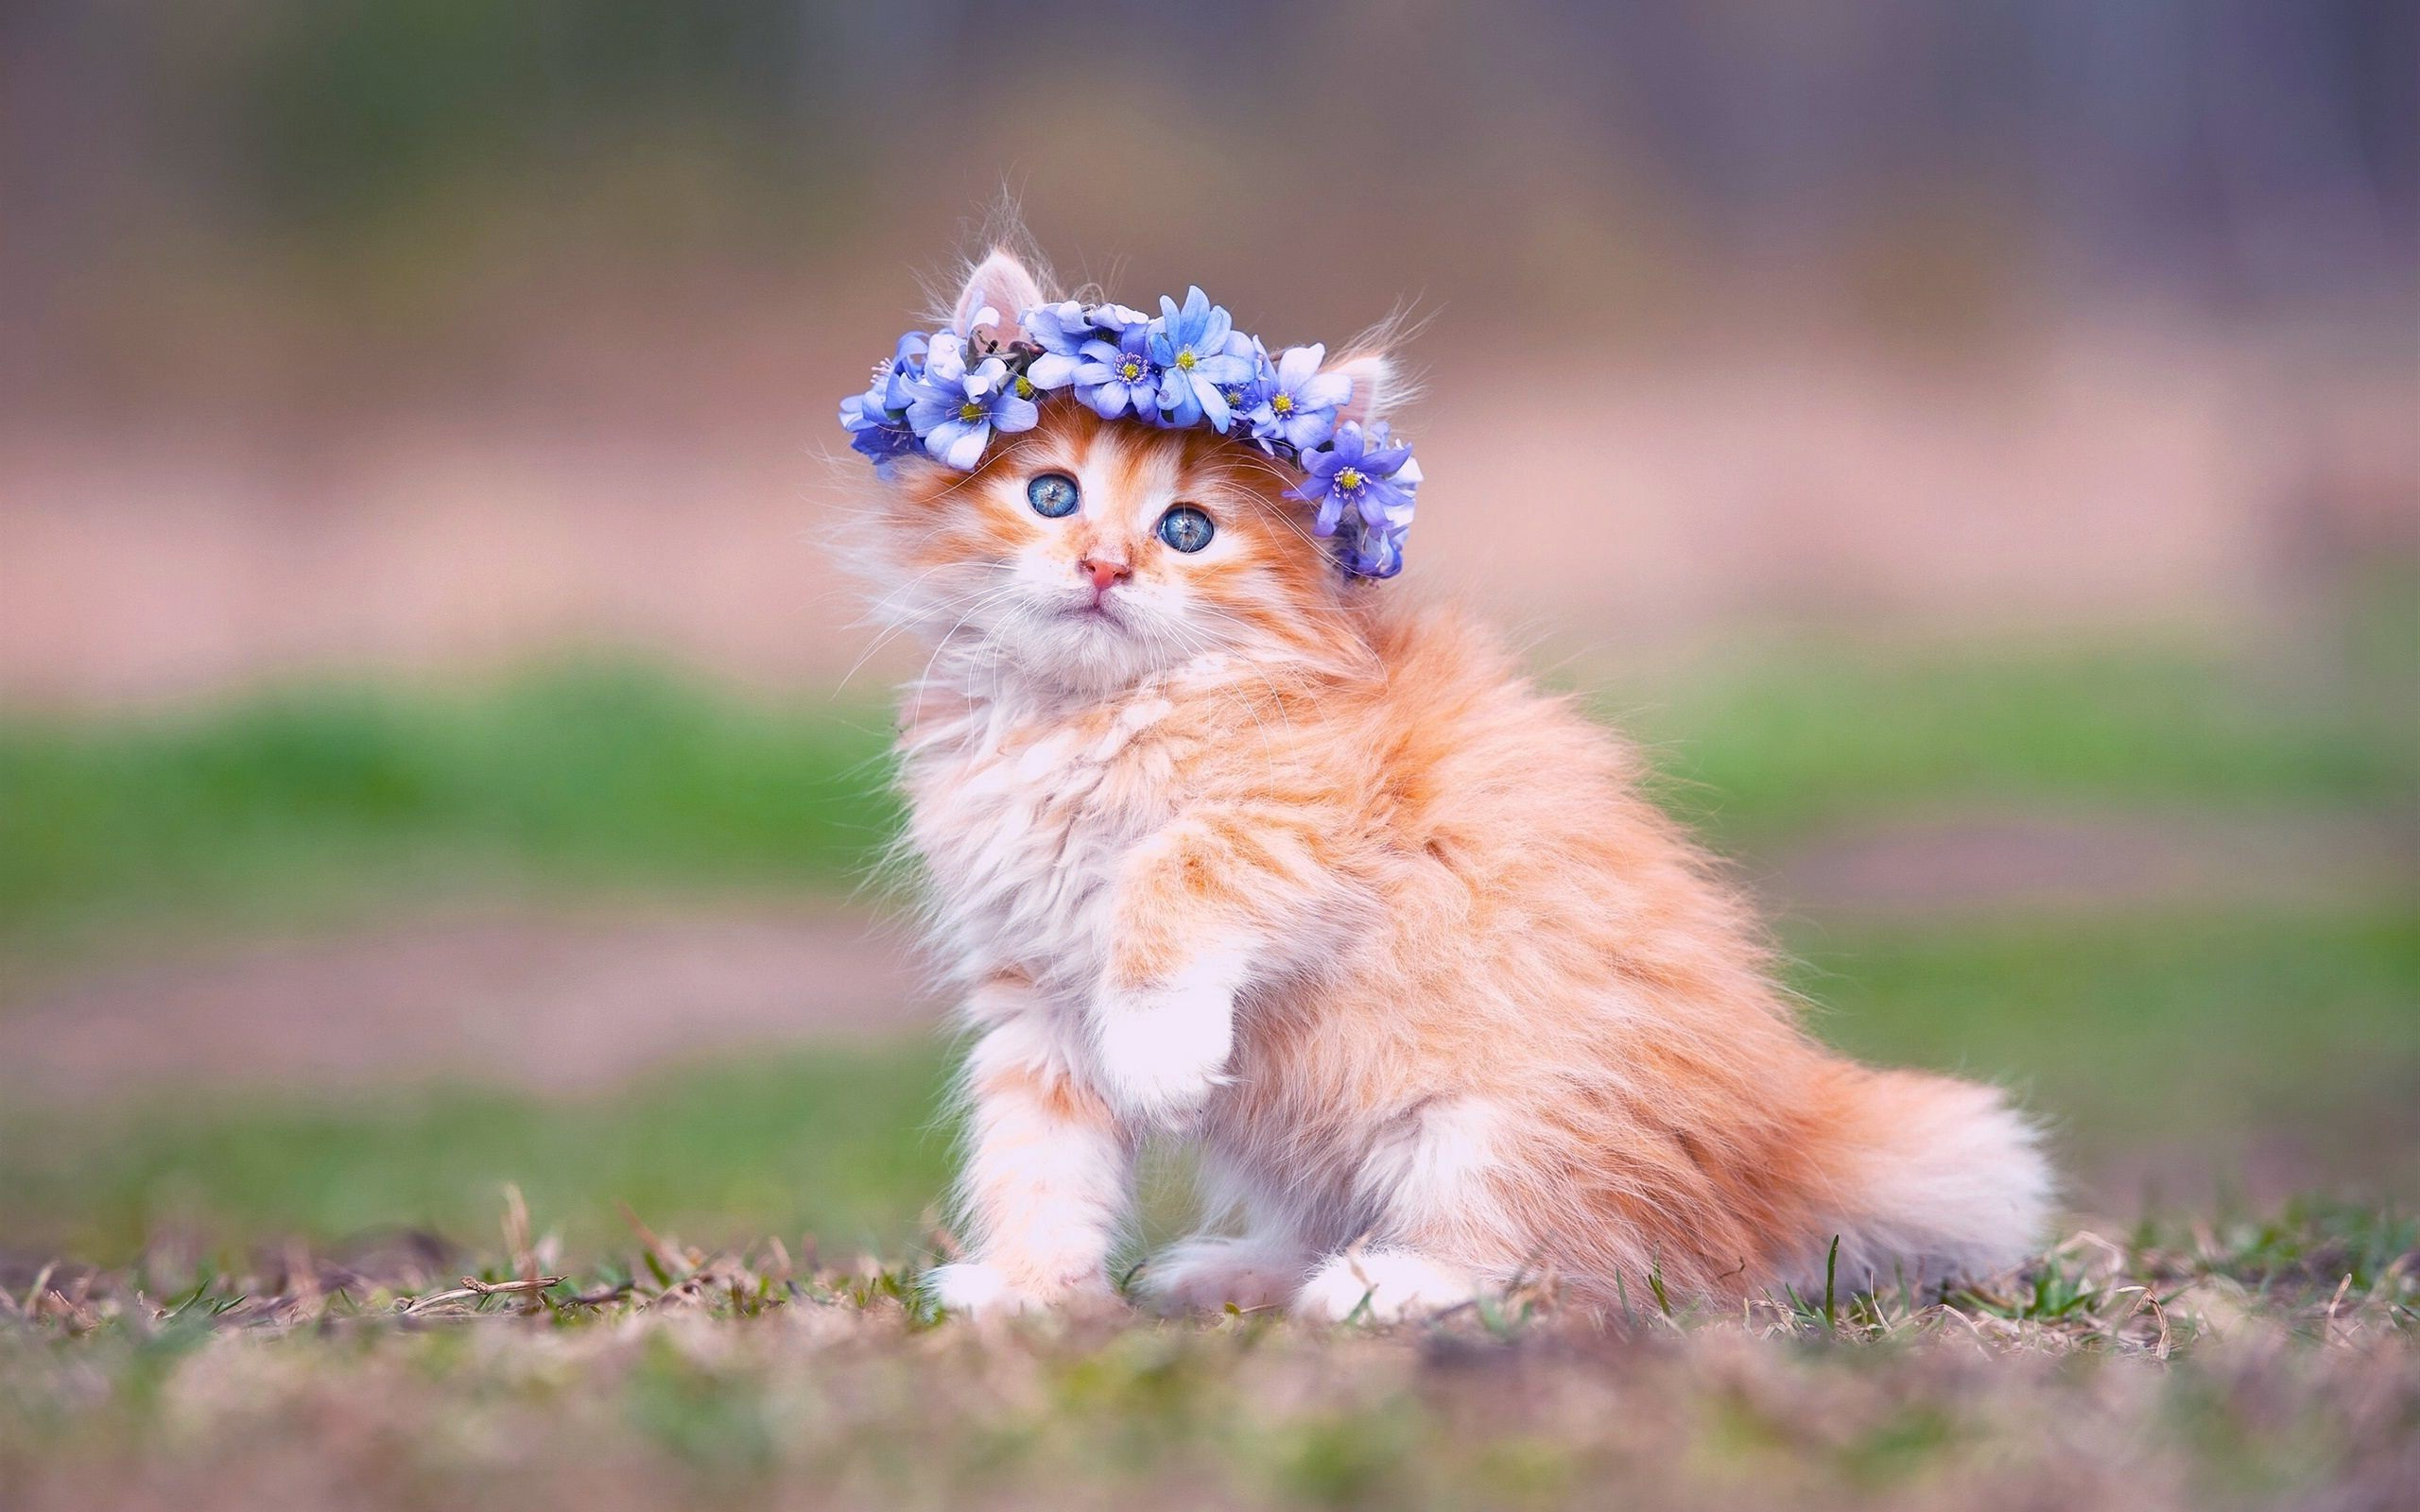 Baby kitten wallpapers 59 images - Kitten backgrounds ...